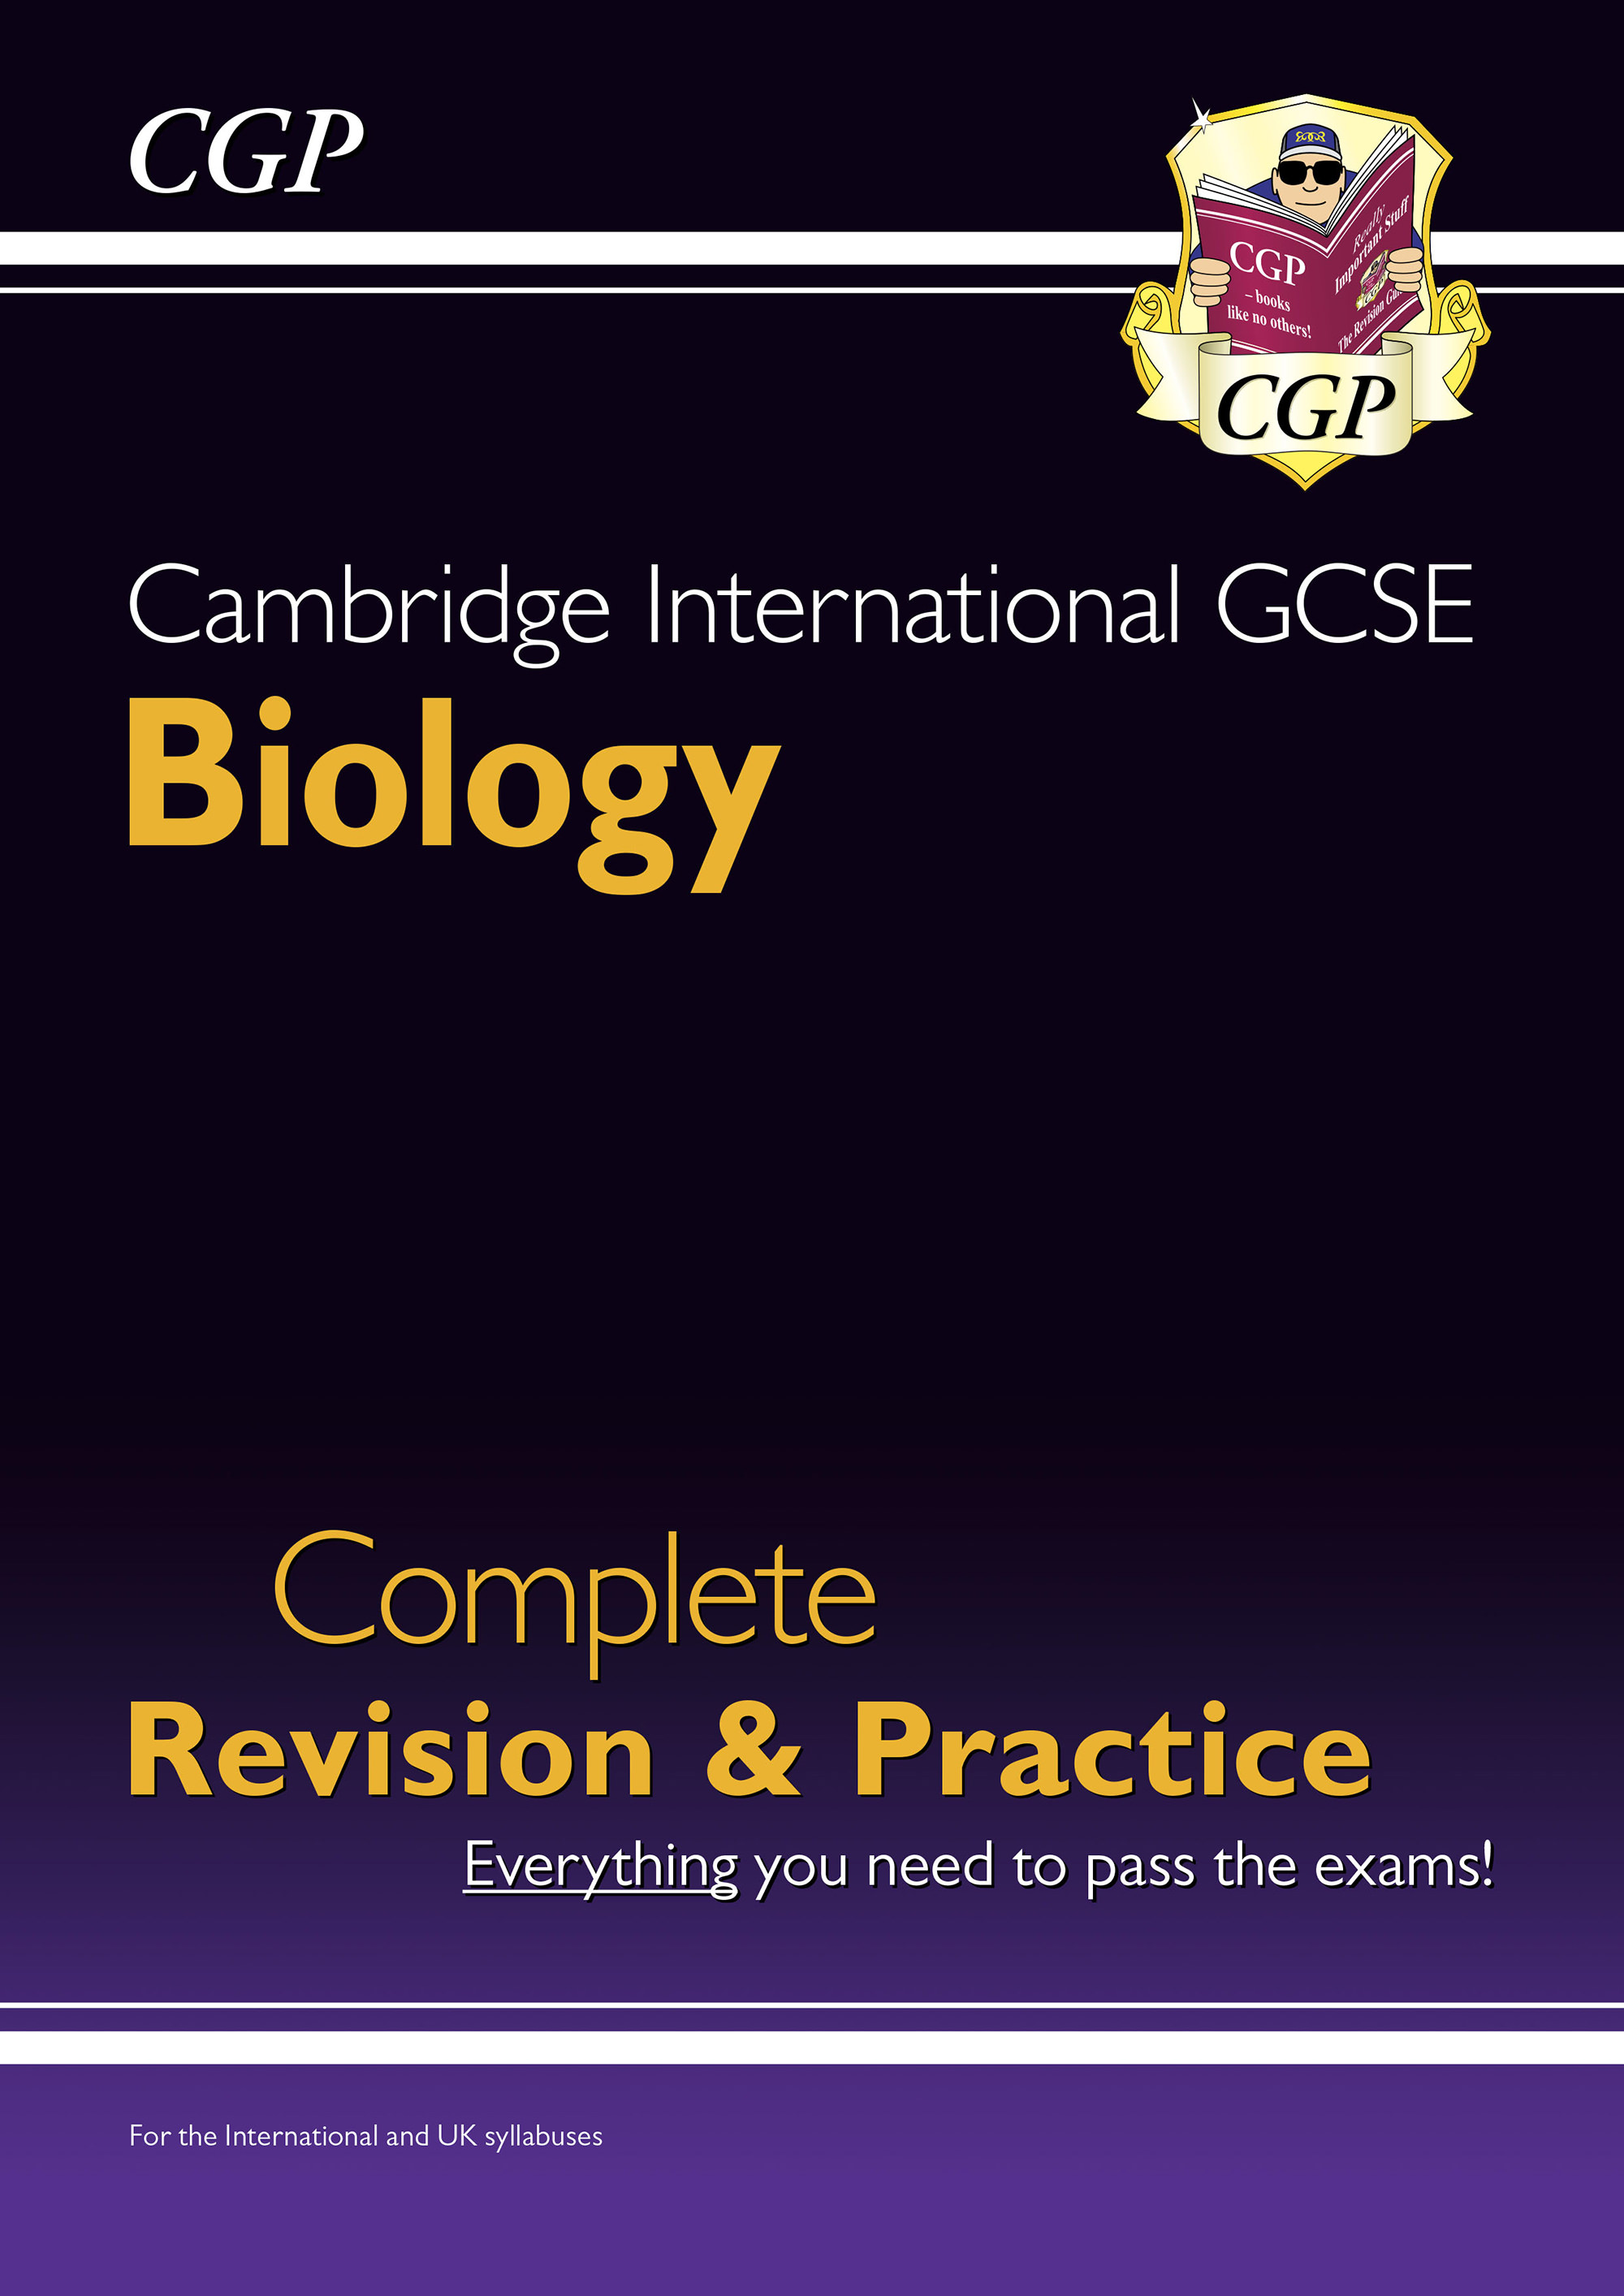 BISI41D - New Cambridge International GCSE Biology Complete Revision & Practice: Core & Extended (On